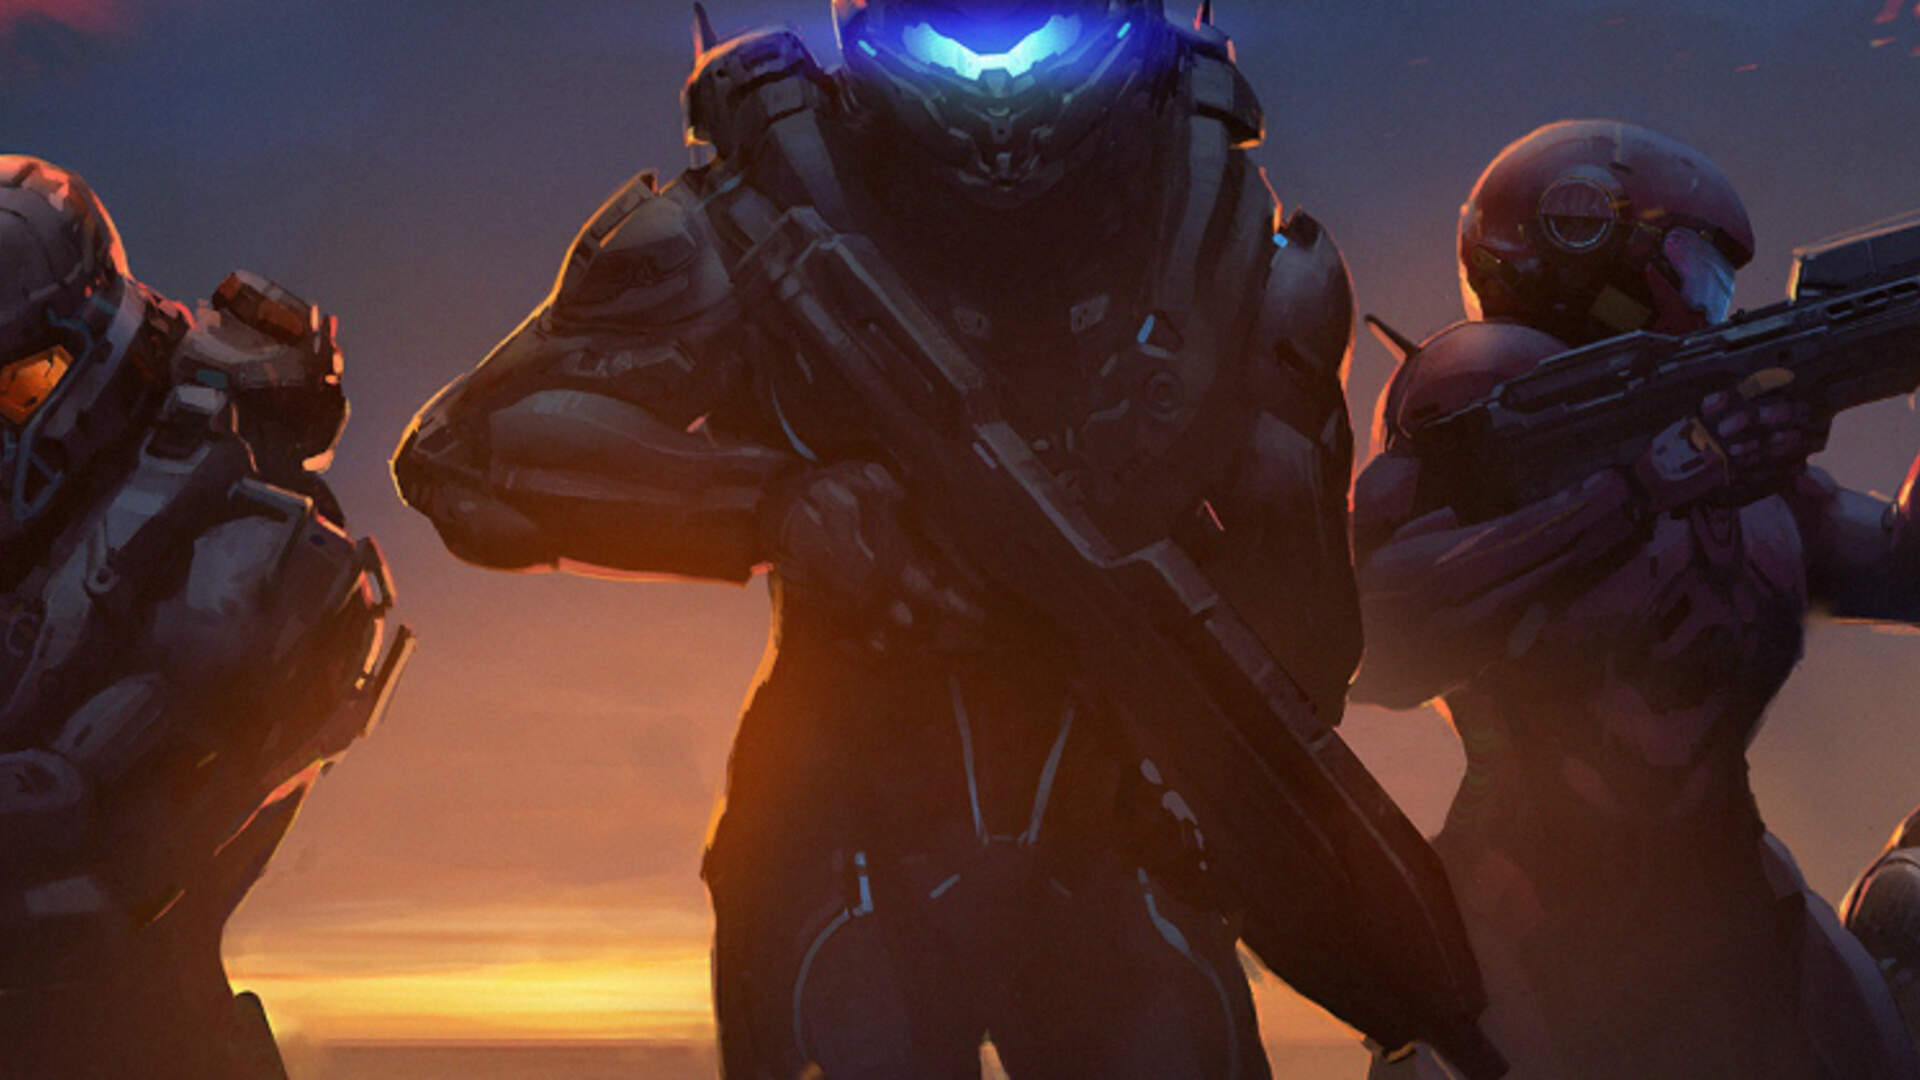 Halo 5's Cinematic Trailer is Cool, Wish We Could Play That Game